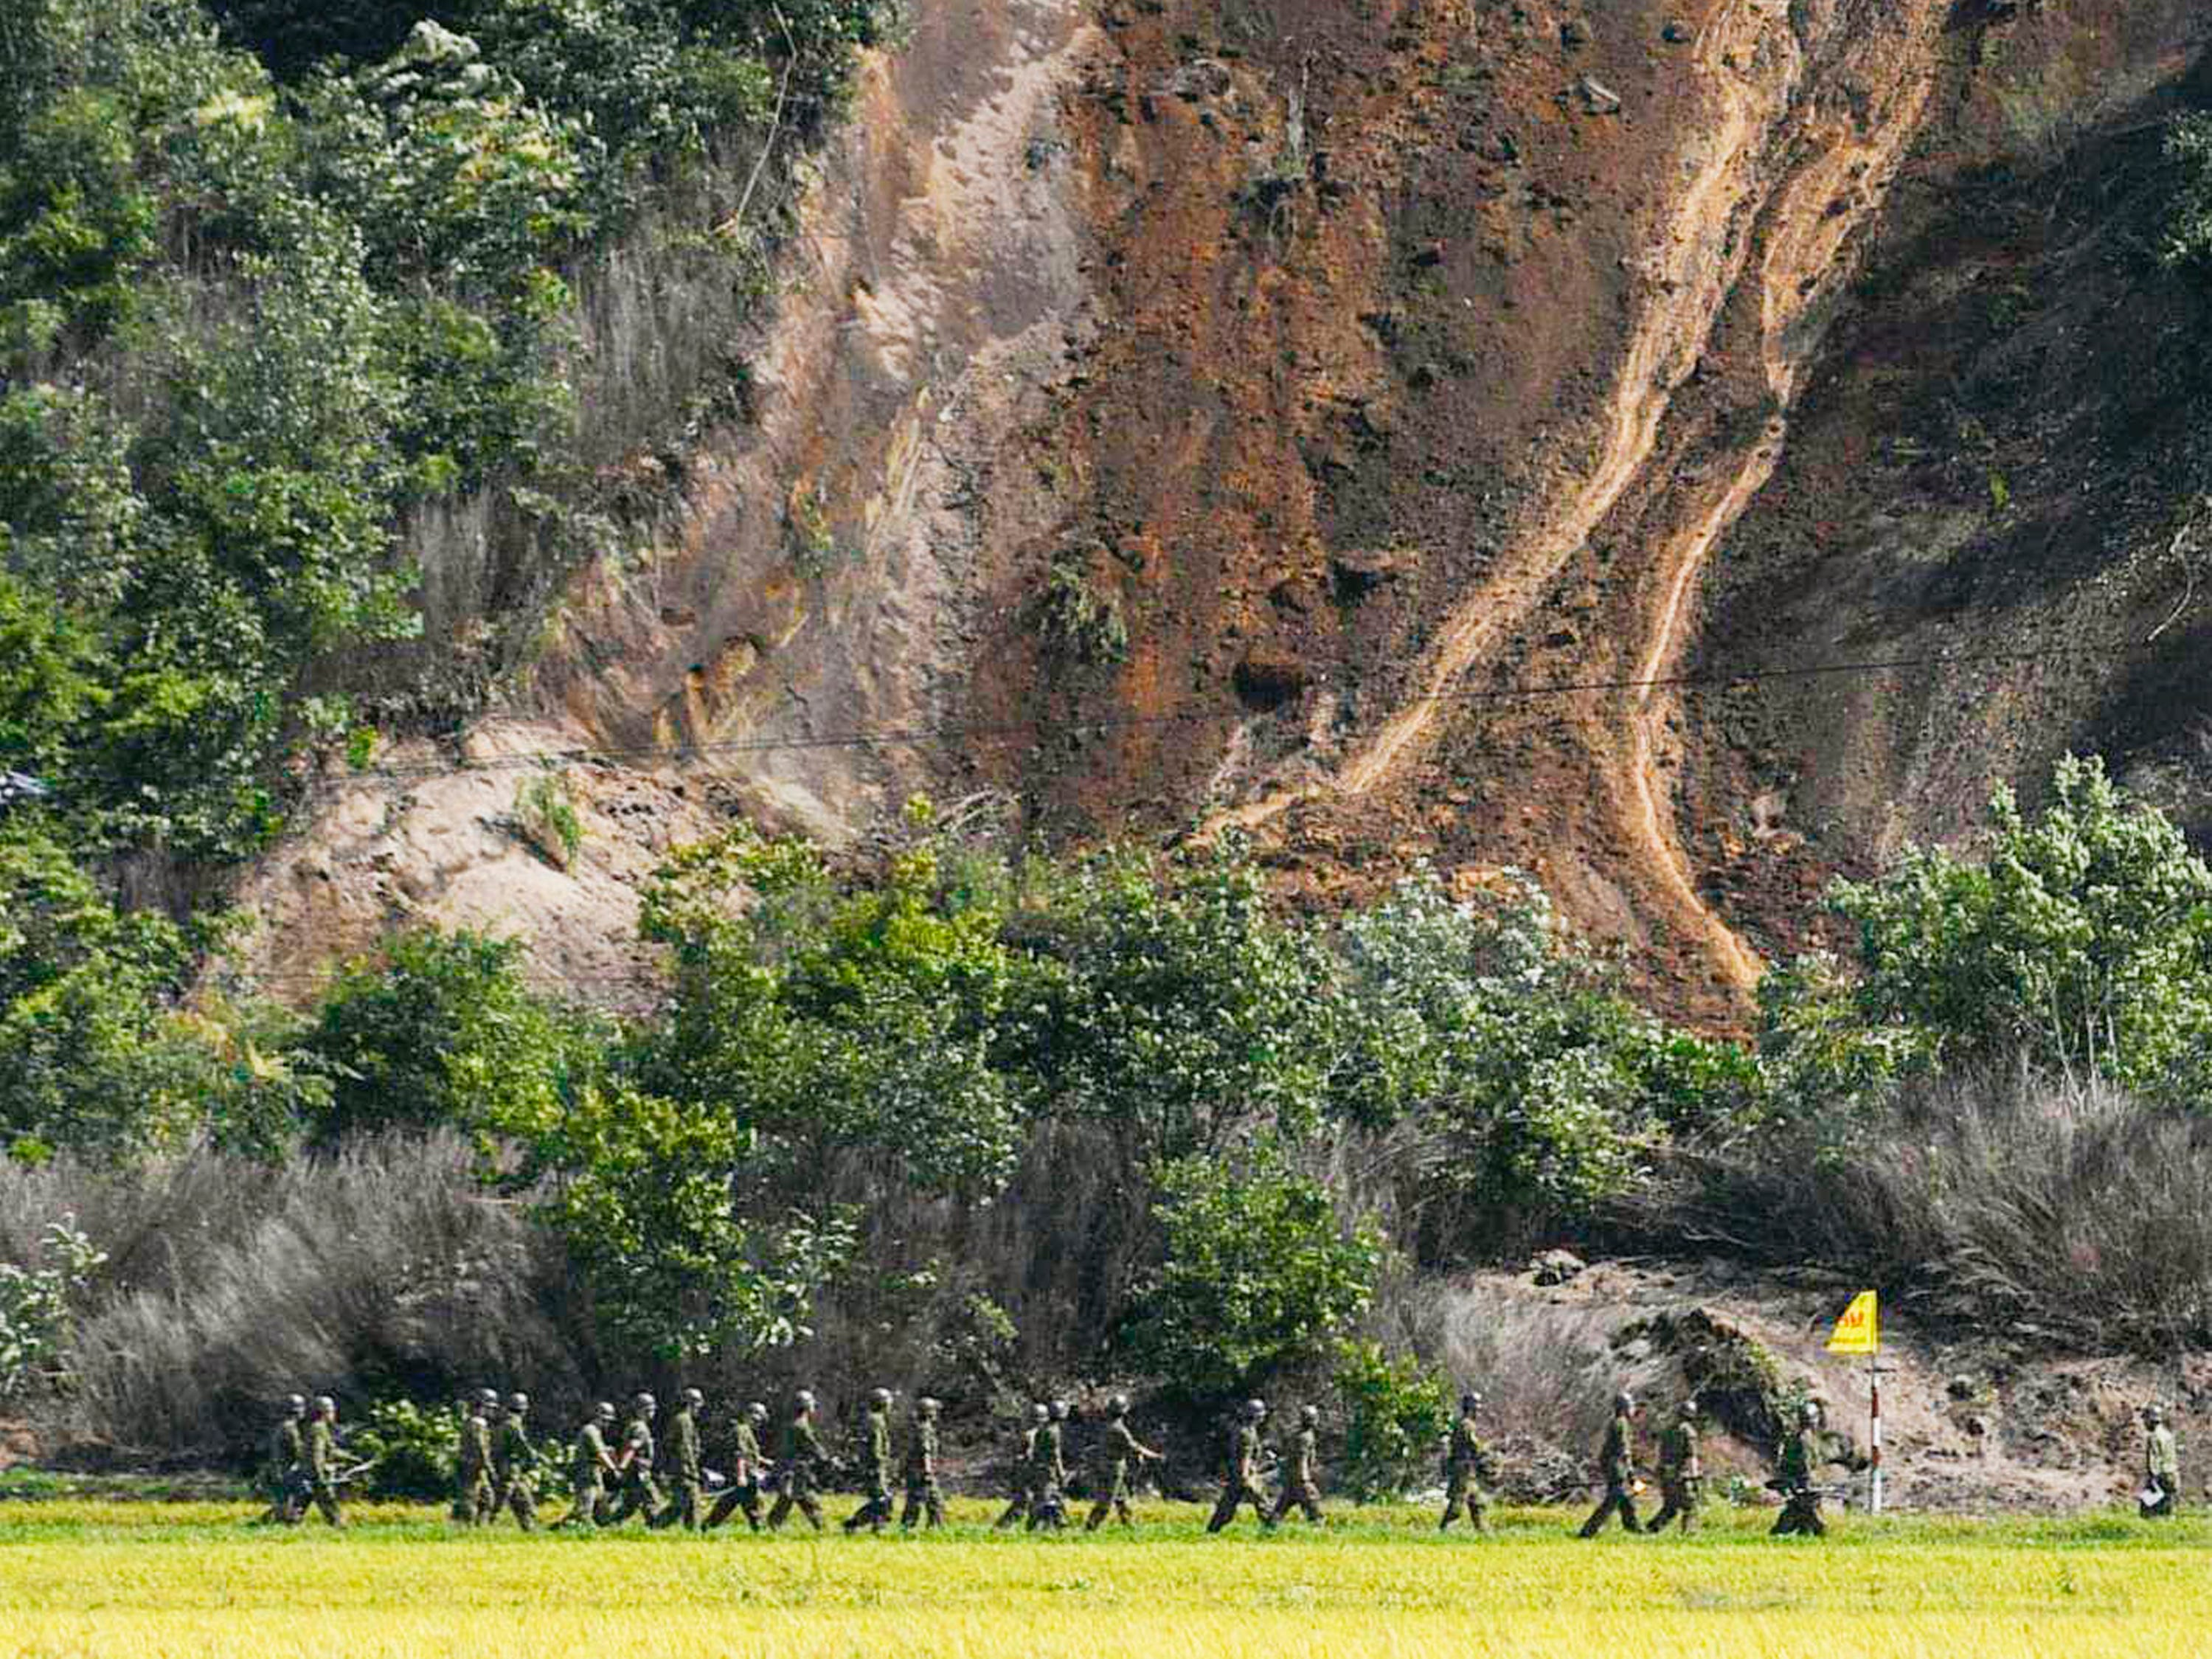 Japan Ground Self-Defense Force personnel head to the site of a landslide following a strong earthquake in Atsuma town, Hokkaido, northern Japan, Sept. 6, 2018.